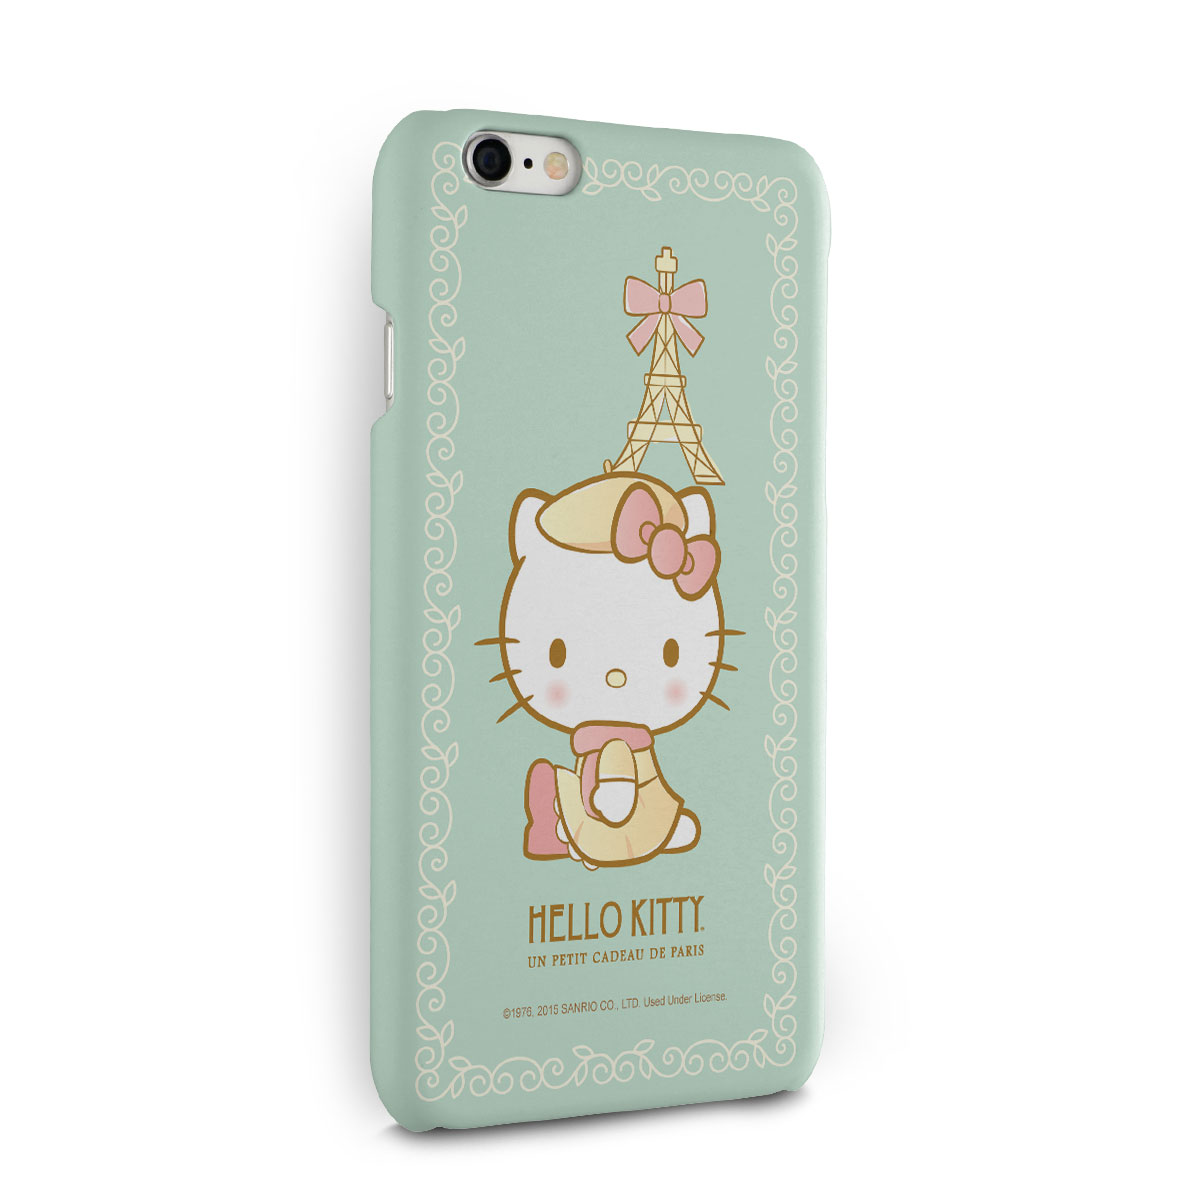 Capa para iPhone 6/6S Hello Kitty Un Petit Cadeau